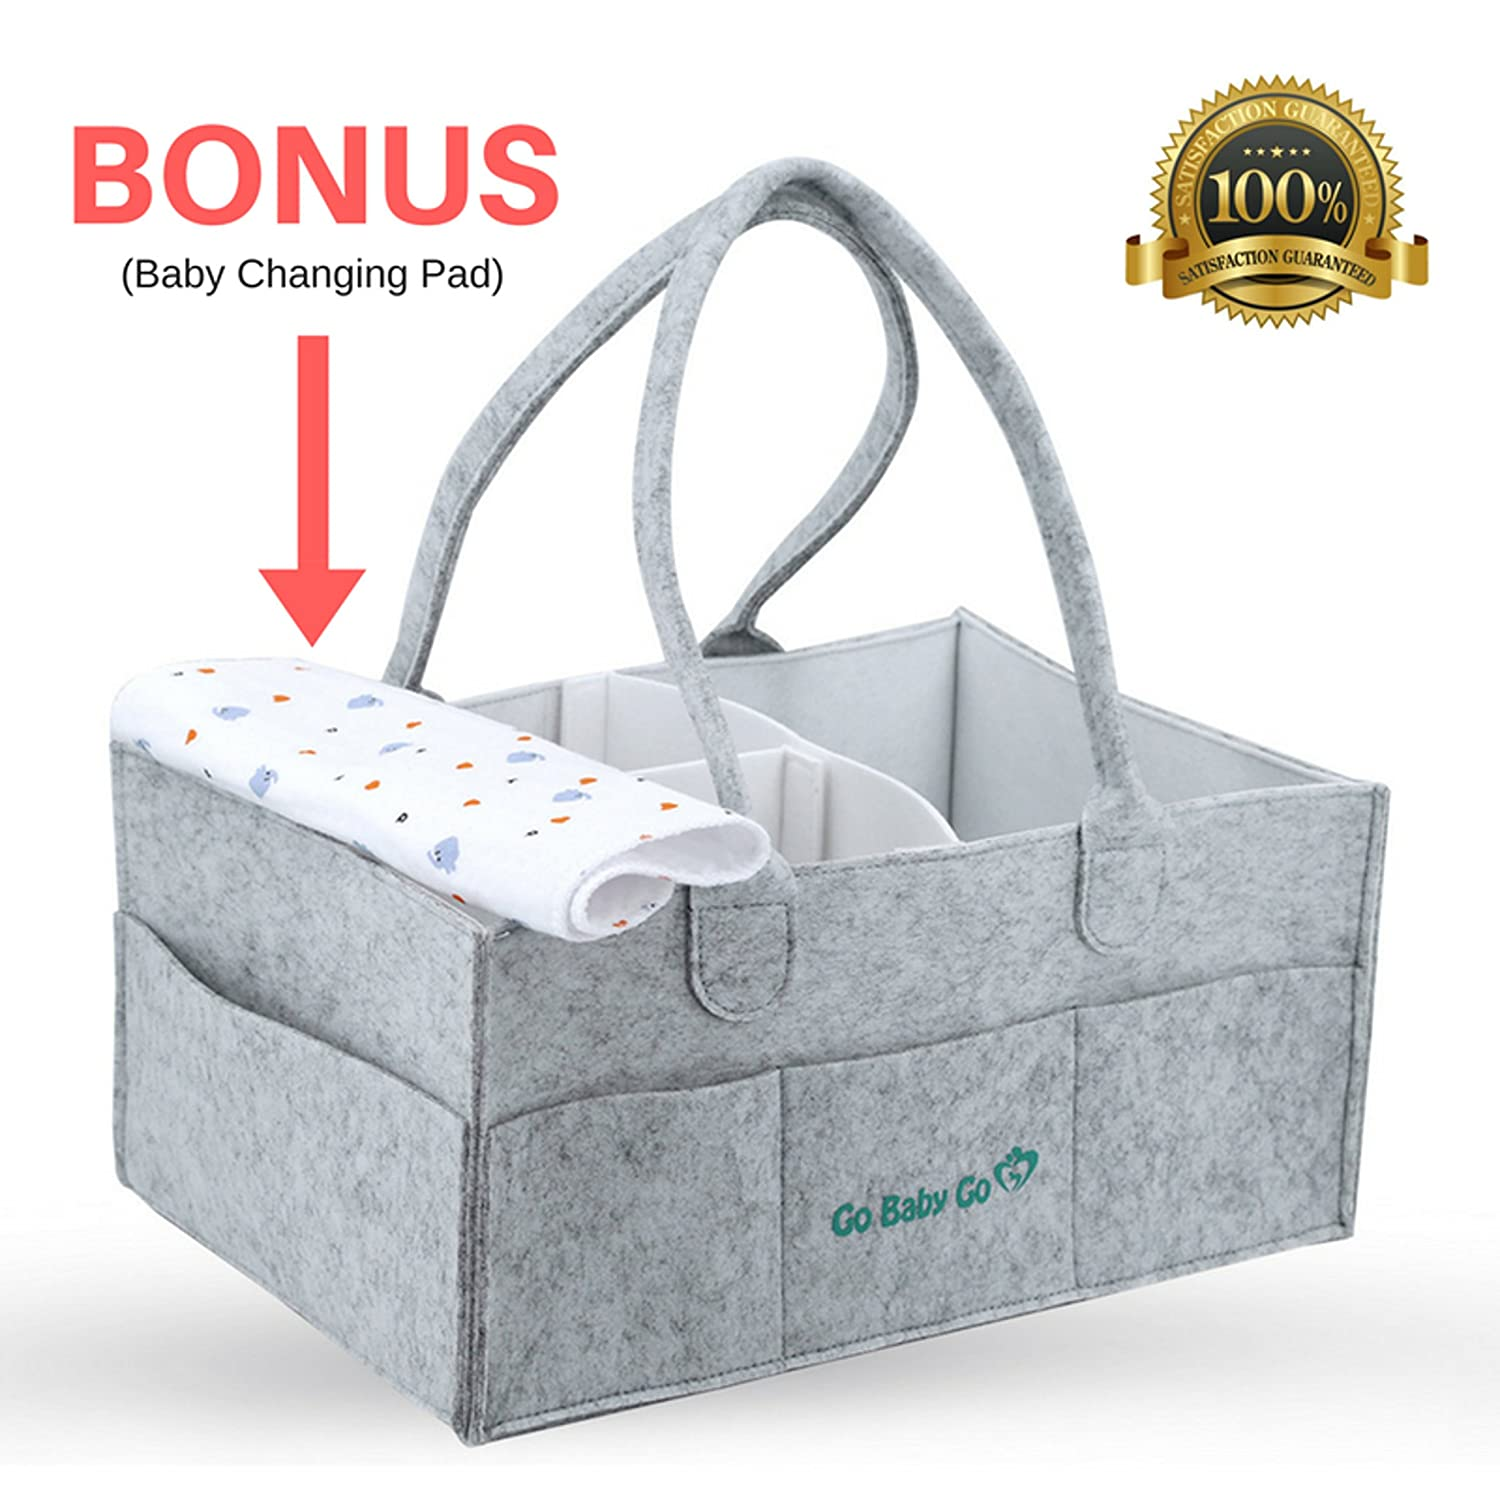 Portable Baby Diaper Caddy by Go Baby Go – Luxury Diaper Organizer Storage Basket and Waterproof Changing Pad – Customizable Compartments – Durable and Lightweight Nursery Travel Bin